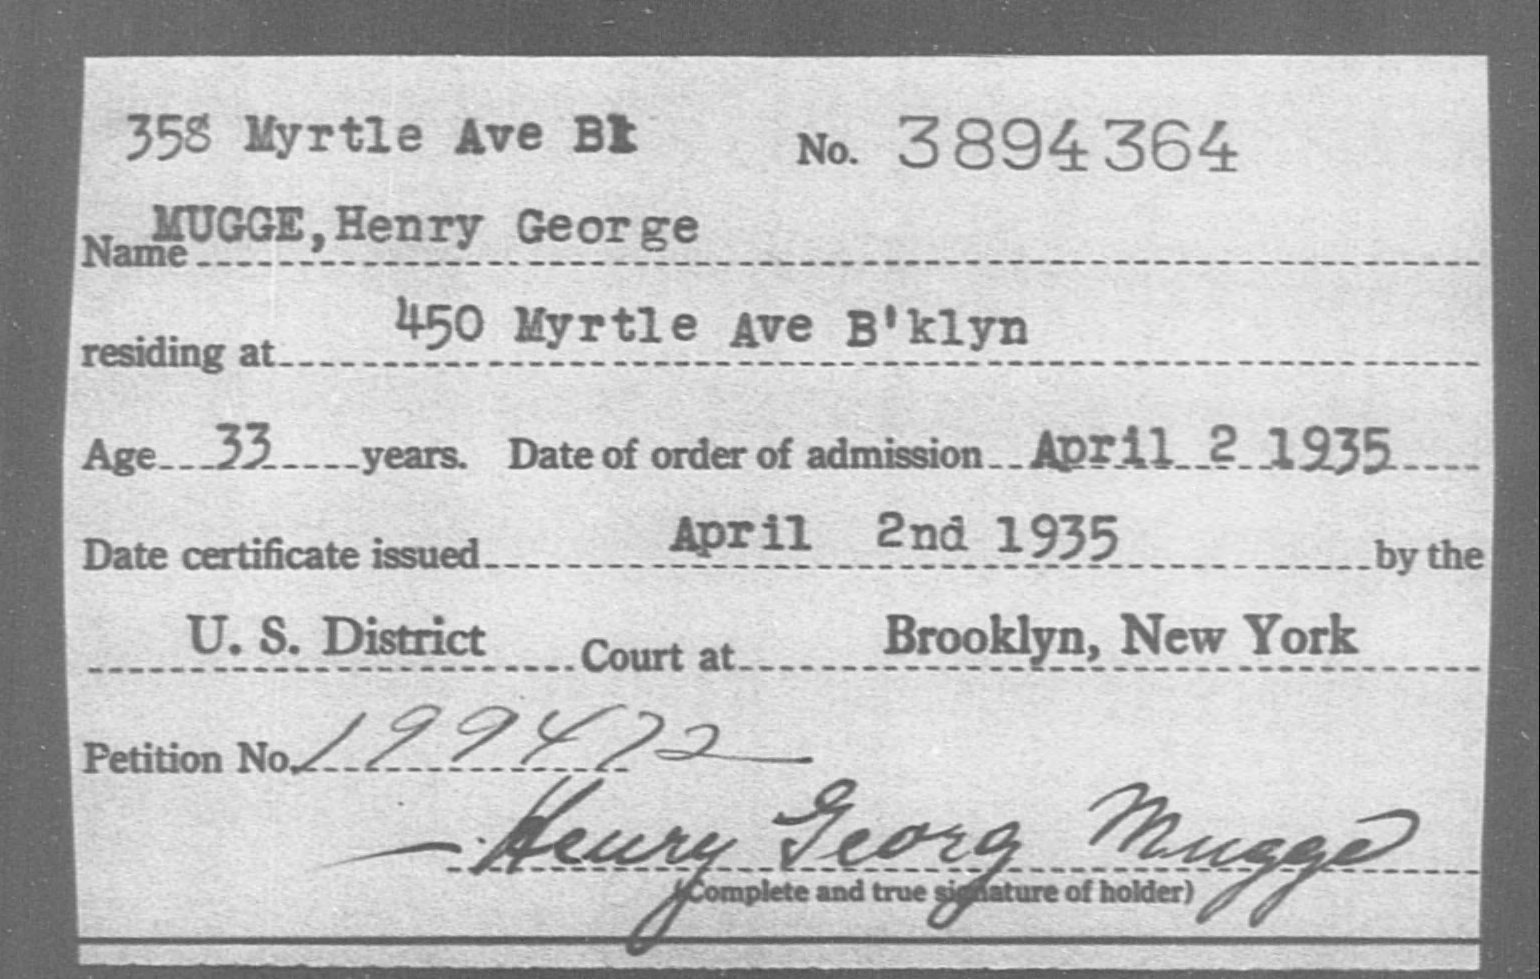 MUGGE, Henry George - Born: [BLANK], Naturalized: 1935